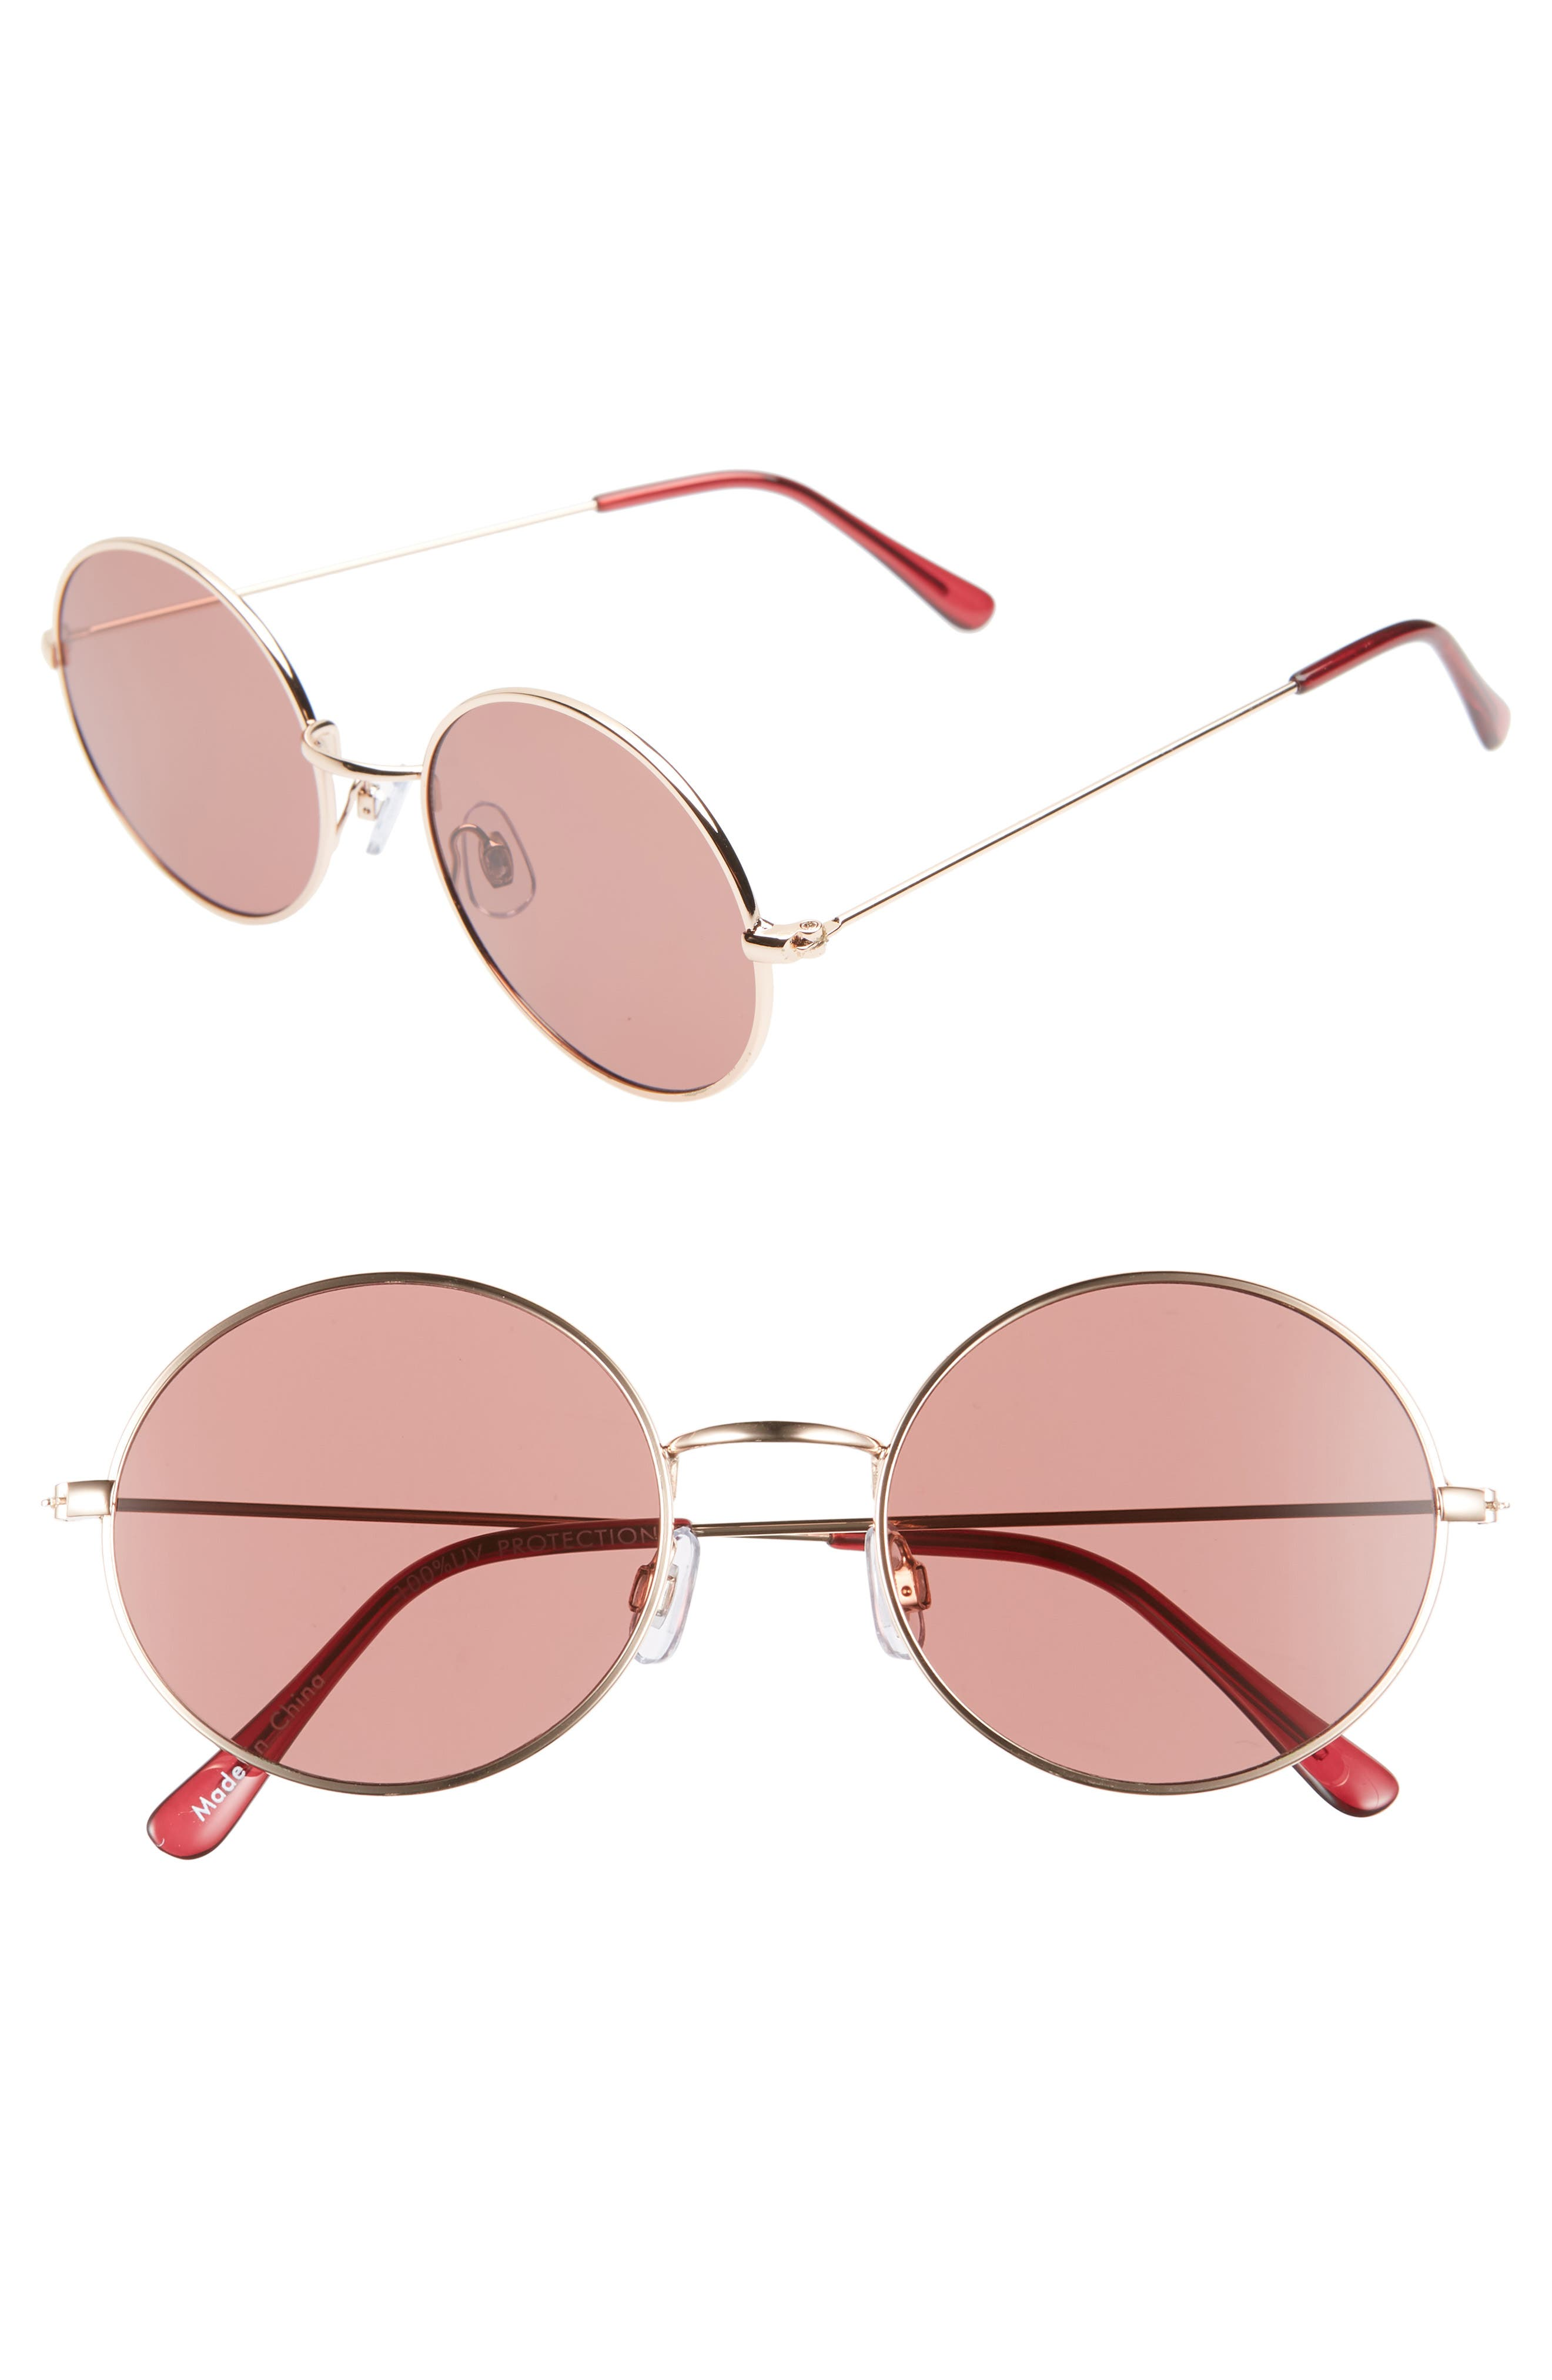 53mm Flat Round Sunglasses,                         Main,                         color, GOLD/ BROWN